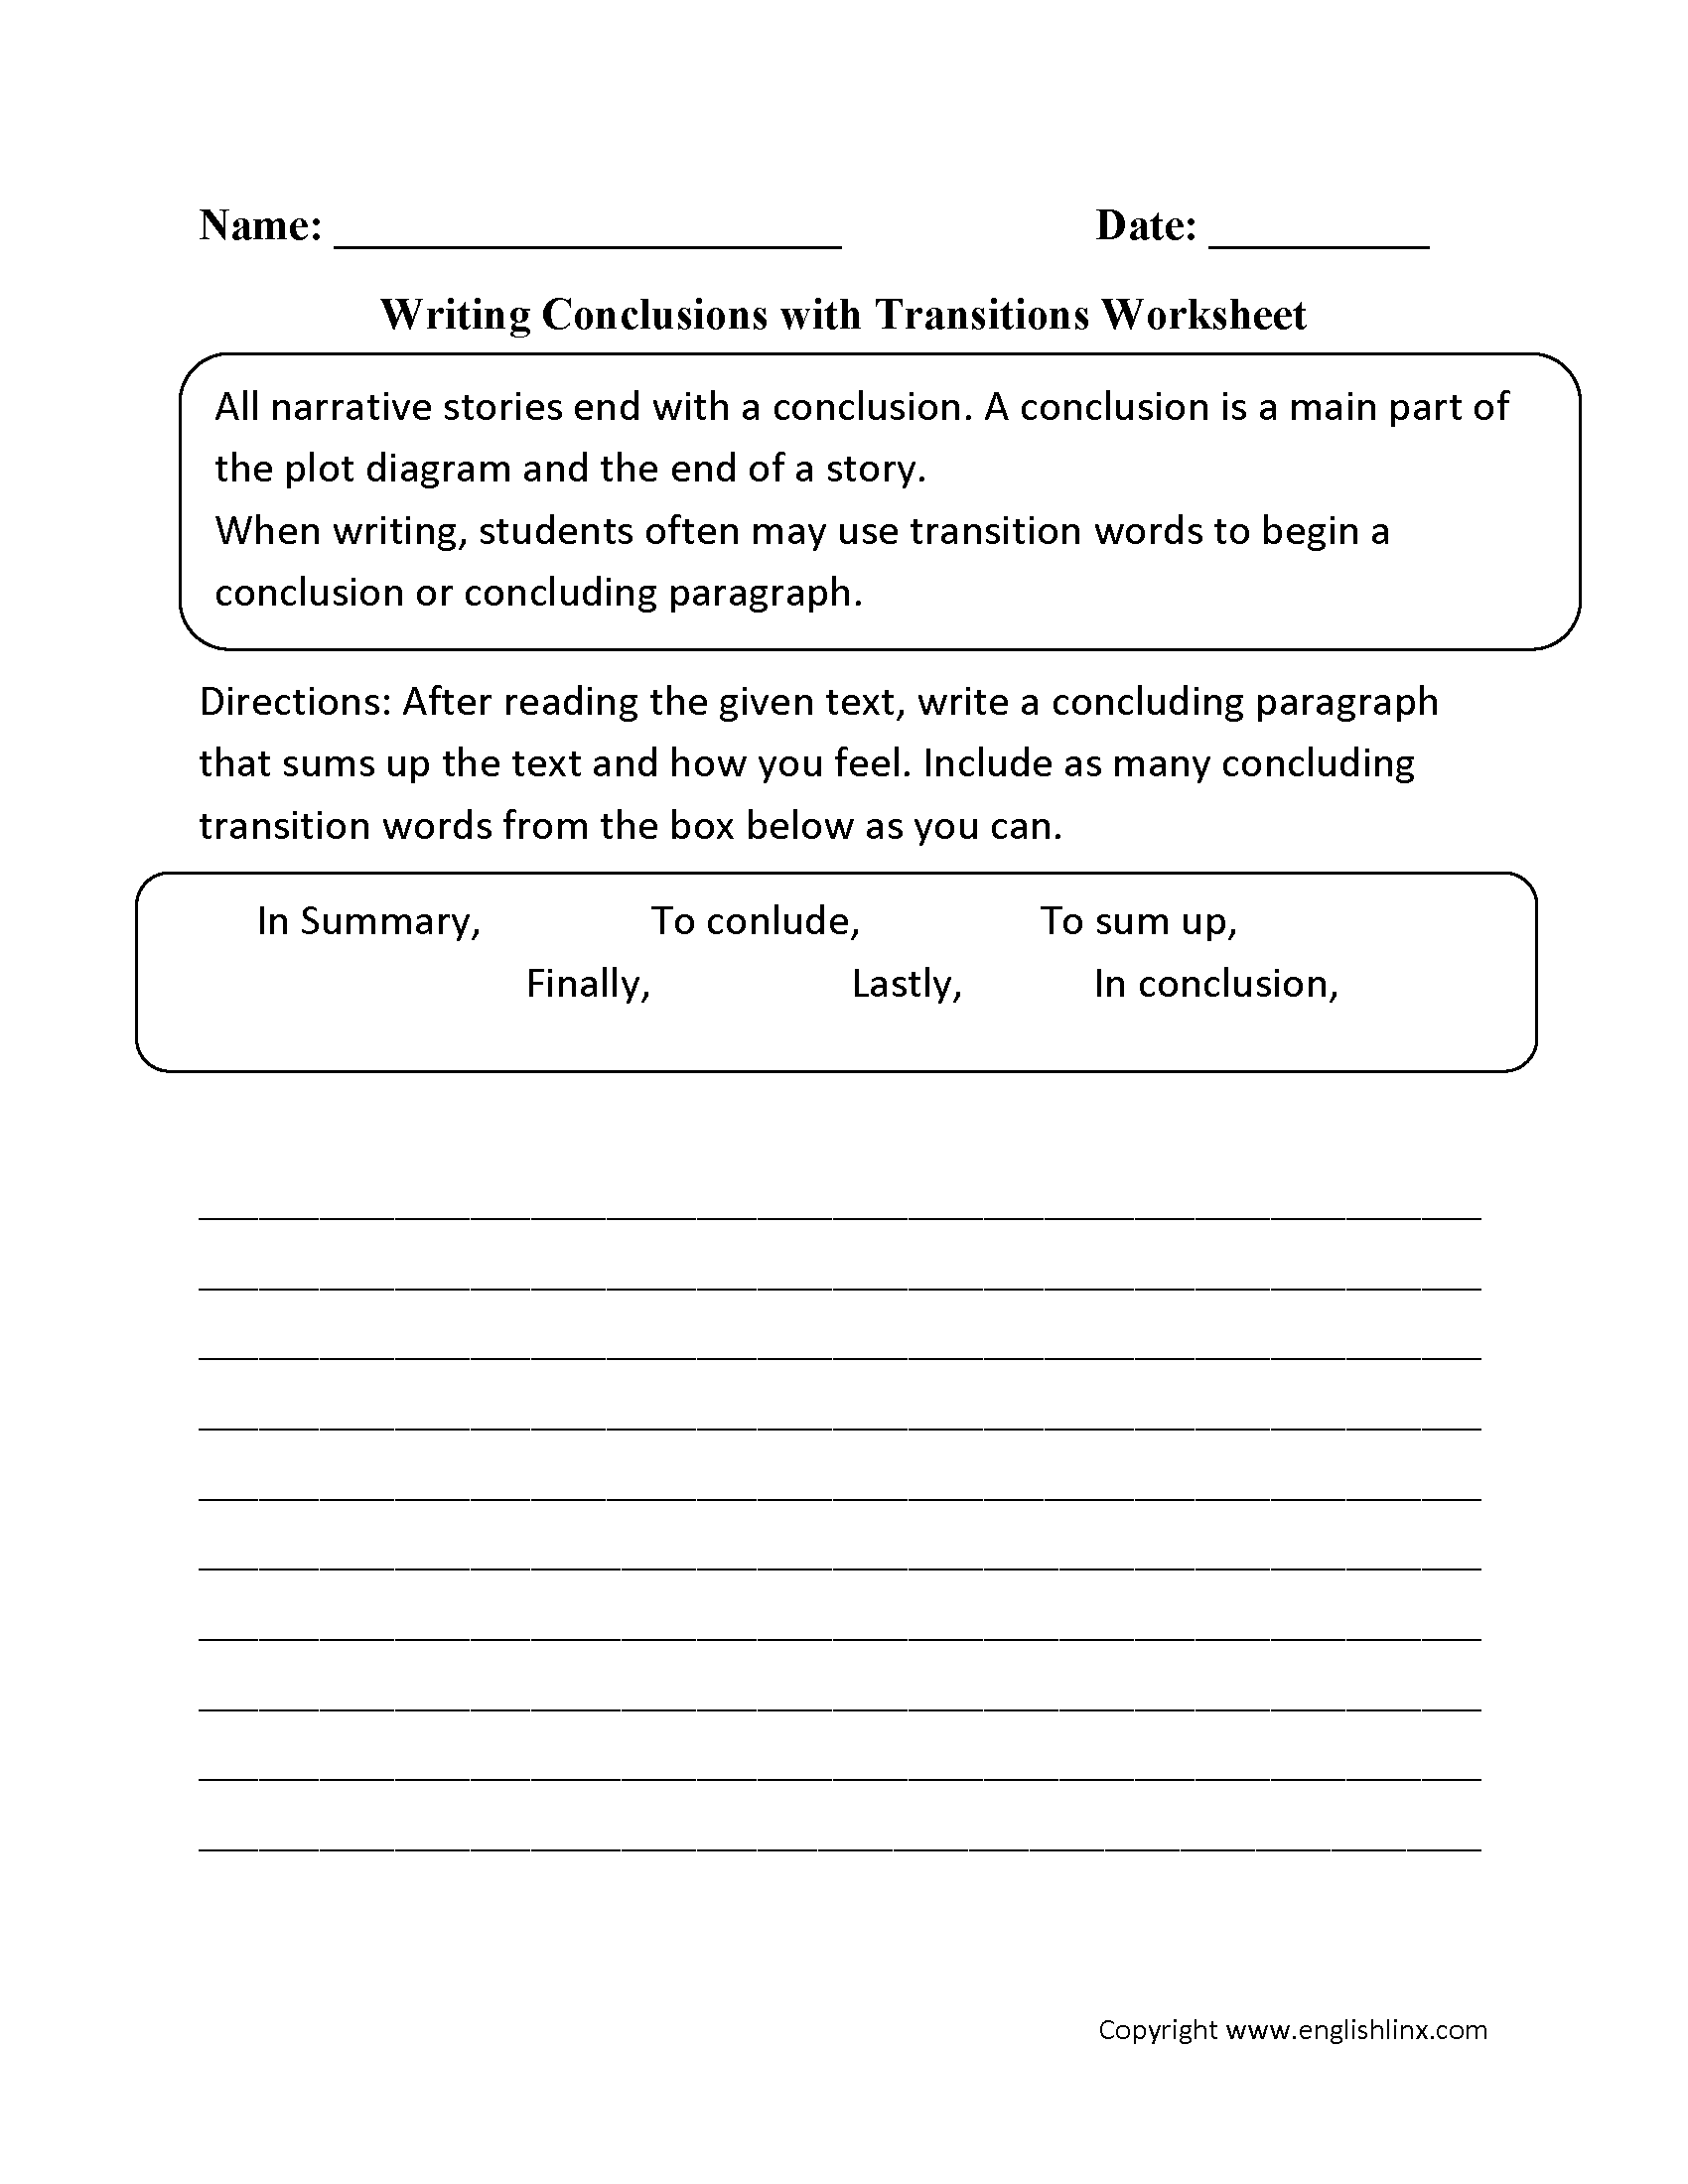 Writing Conclusions with Transitions Worksheets   Reading worksheets [ 2200 x 1700 Pixel ]